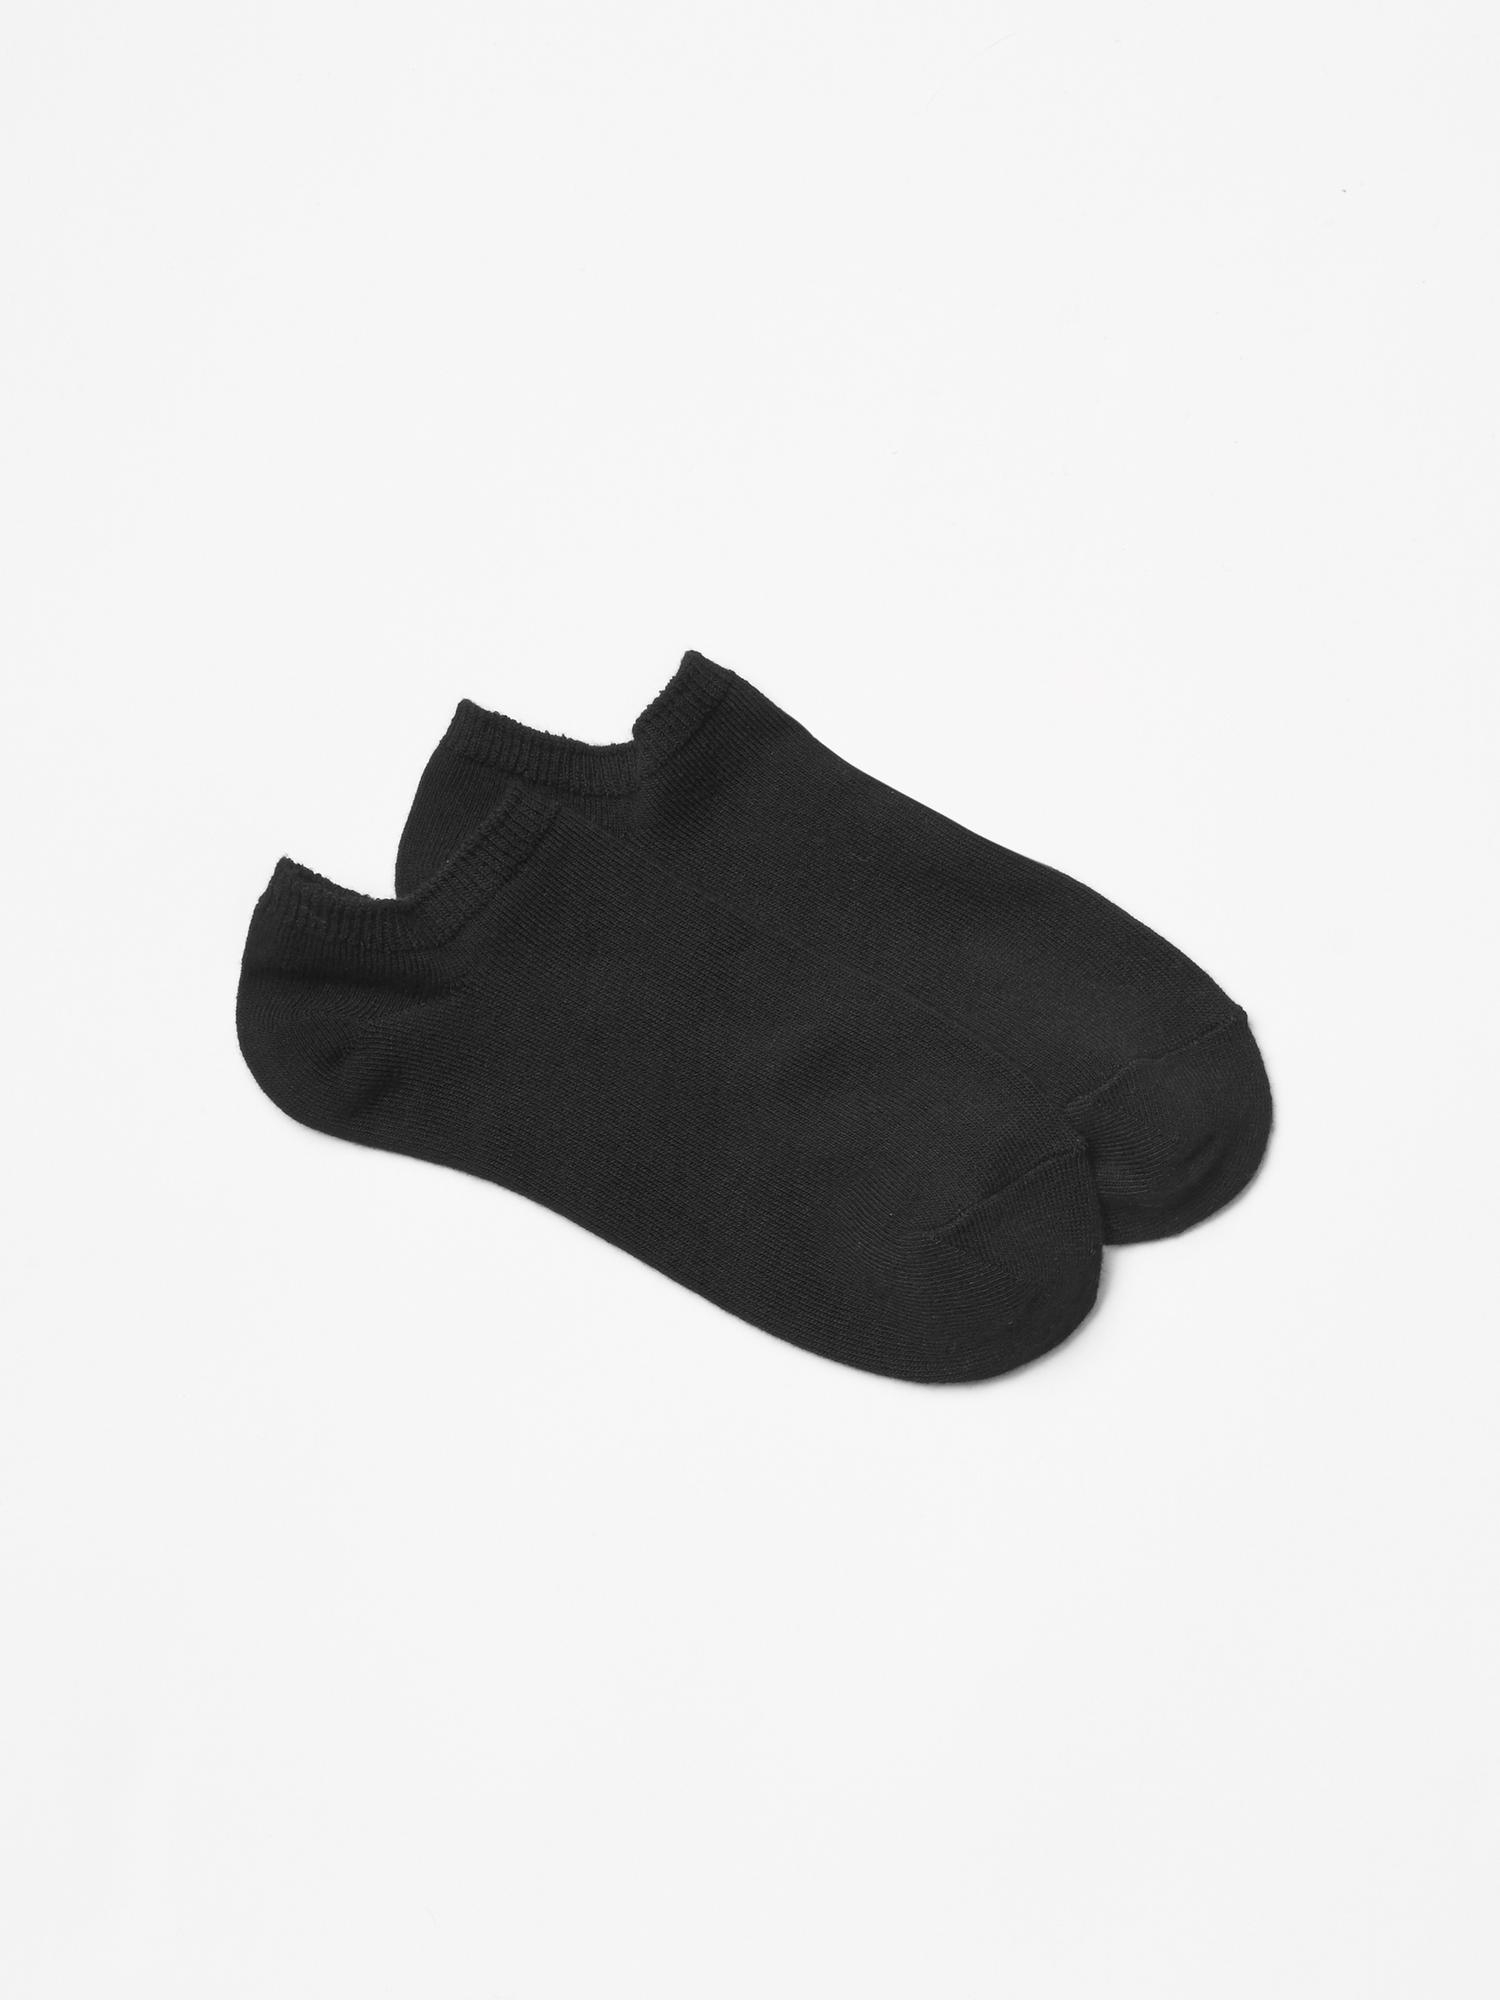 gap black single men Shop casual women's, men's, maternity, kids' & baby clothes at gap our style is clean and confident, comfortable and accessible, classic and modern find the perfect pair of jeans.